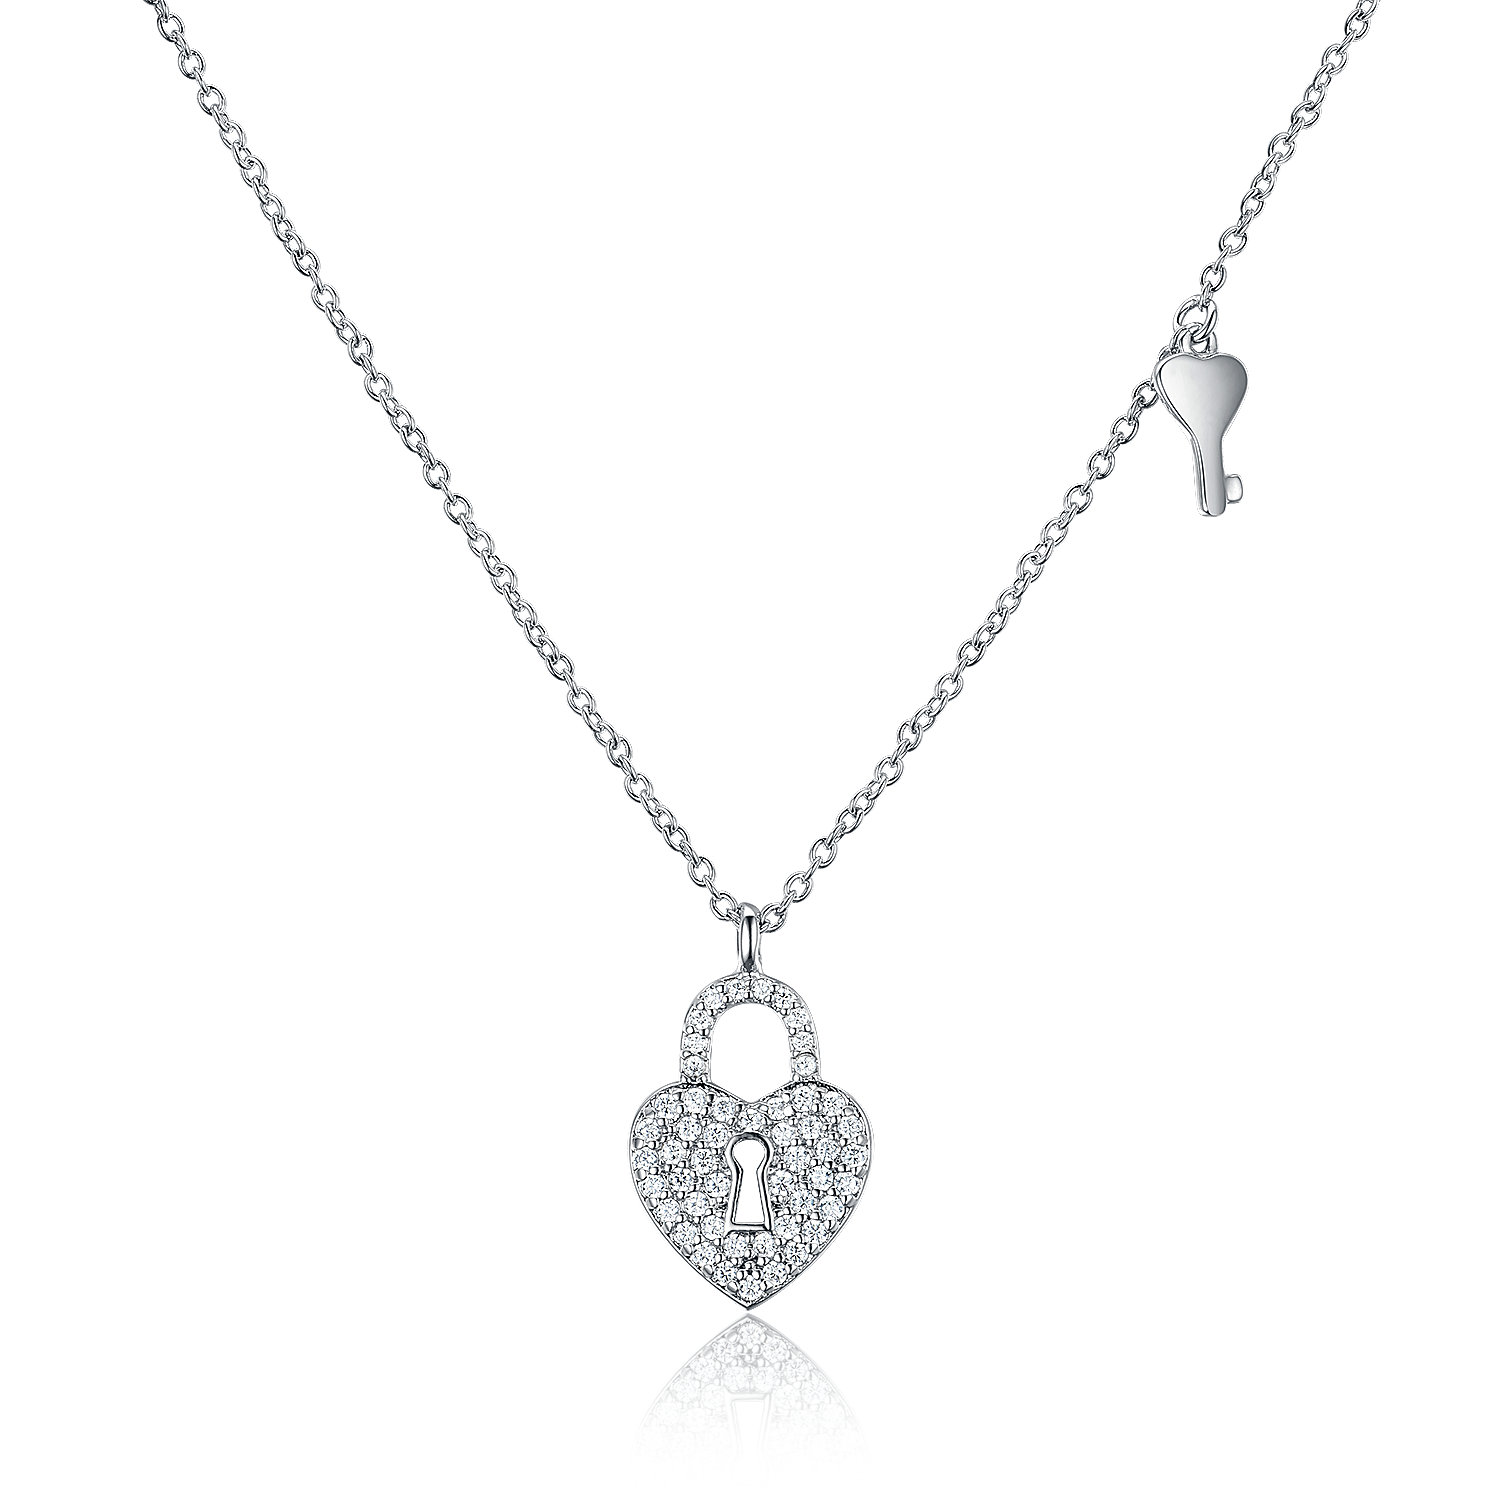 NE2844-Heart lock and Key necklace with White Cubic Zircon in Silver plated Rhodium from China reliable Jewelry factory